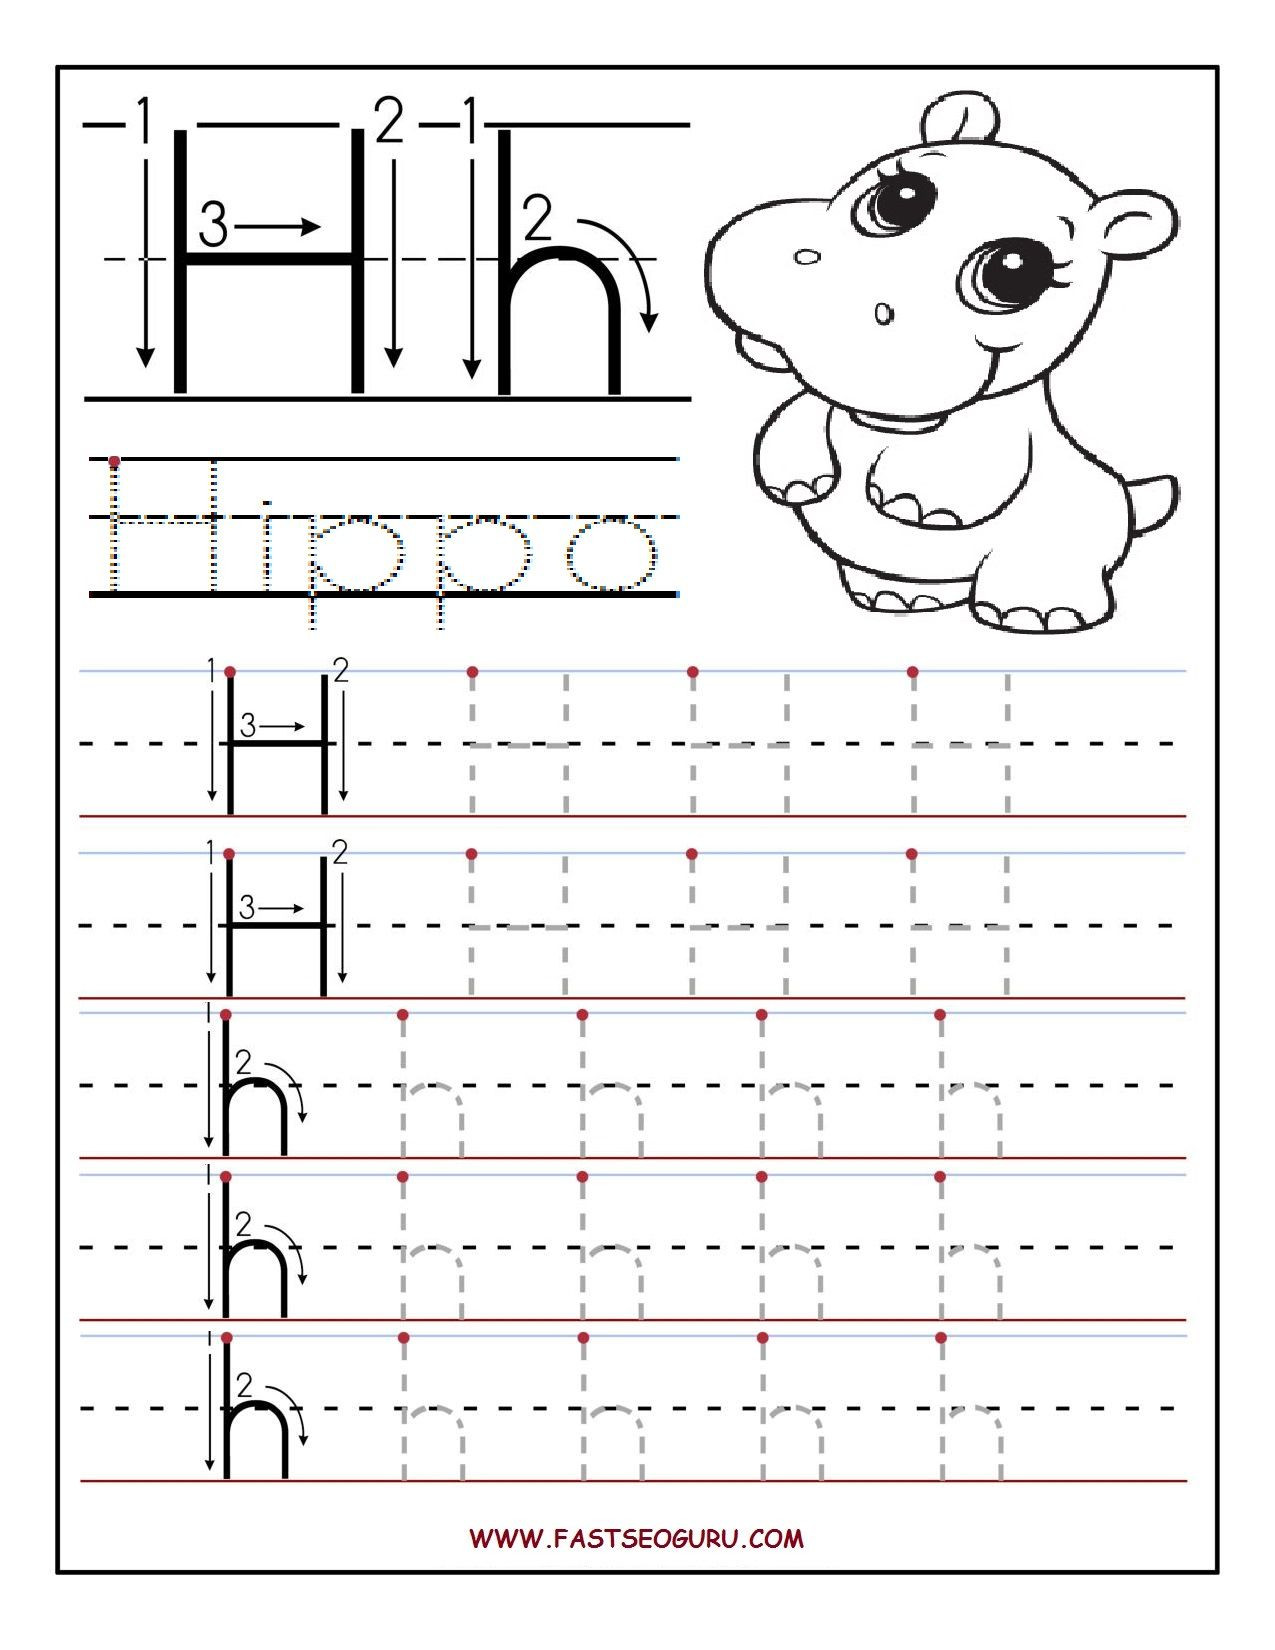 Printable letter H tracing worksheets for preschool